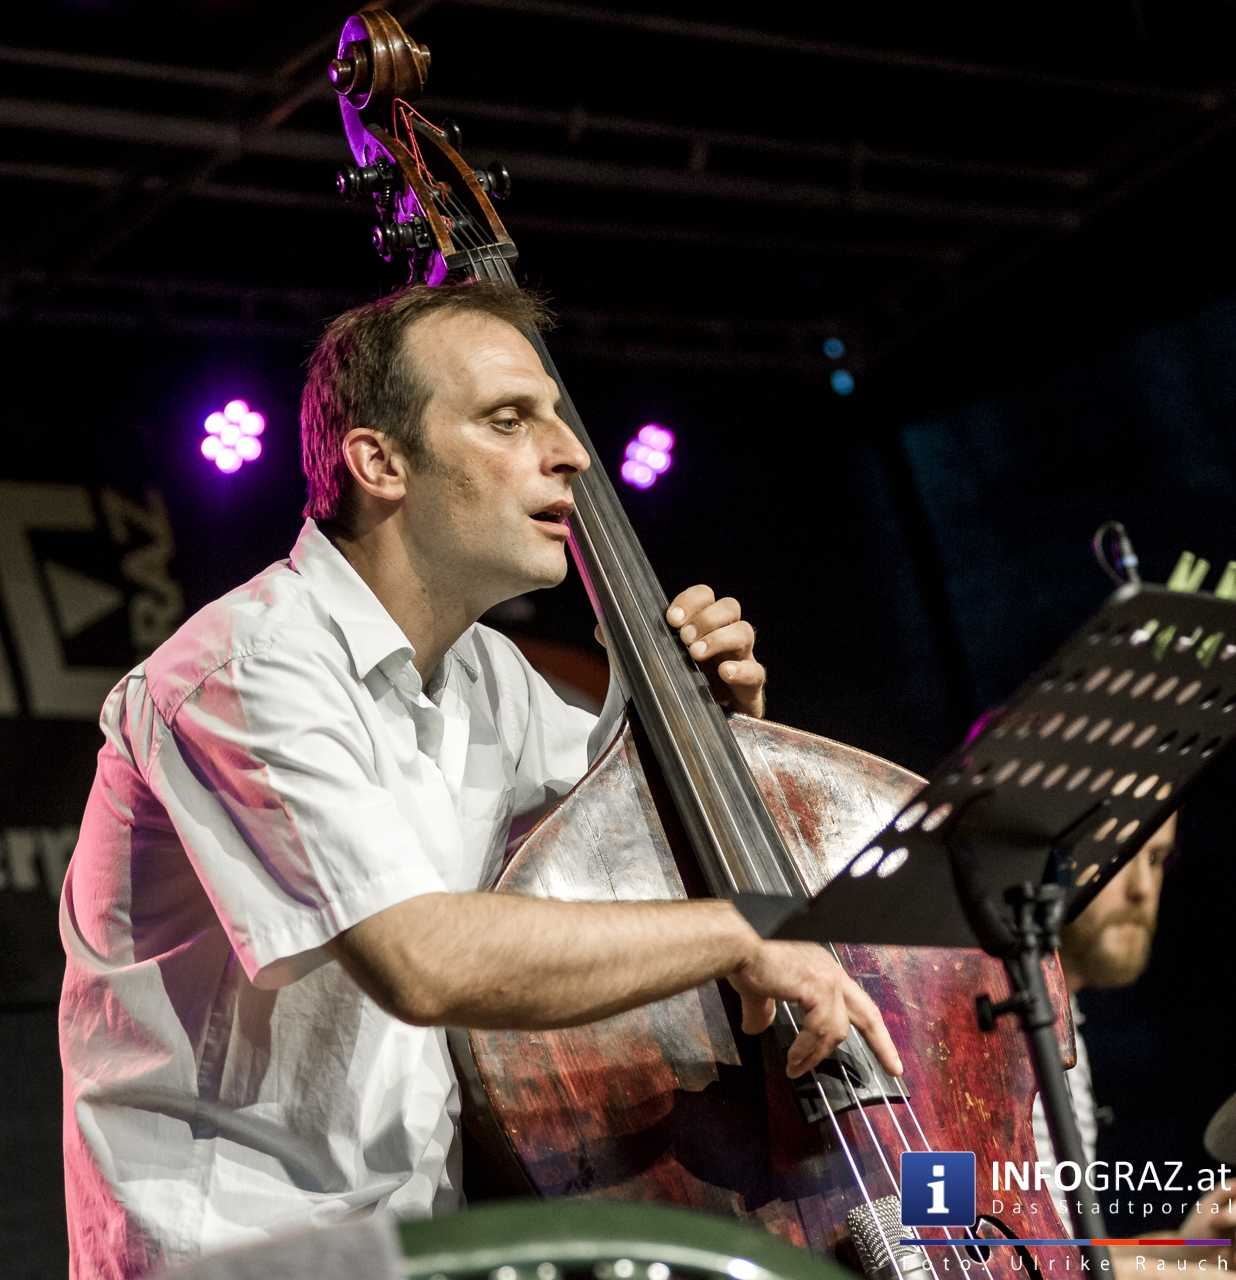 Karlheinz Miklin - 'Jazz via Brazil' am 4. August 2016 am Mariahilferplatz - 023